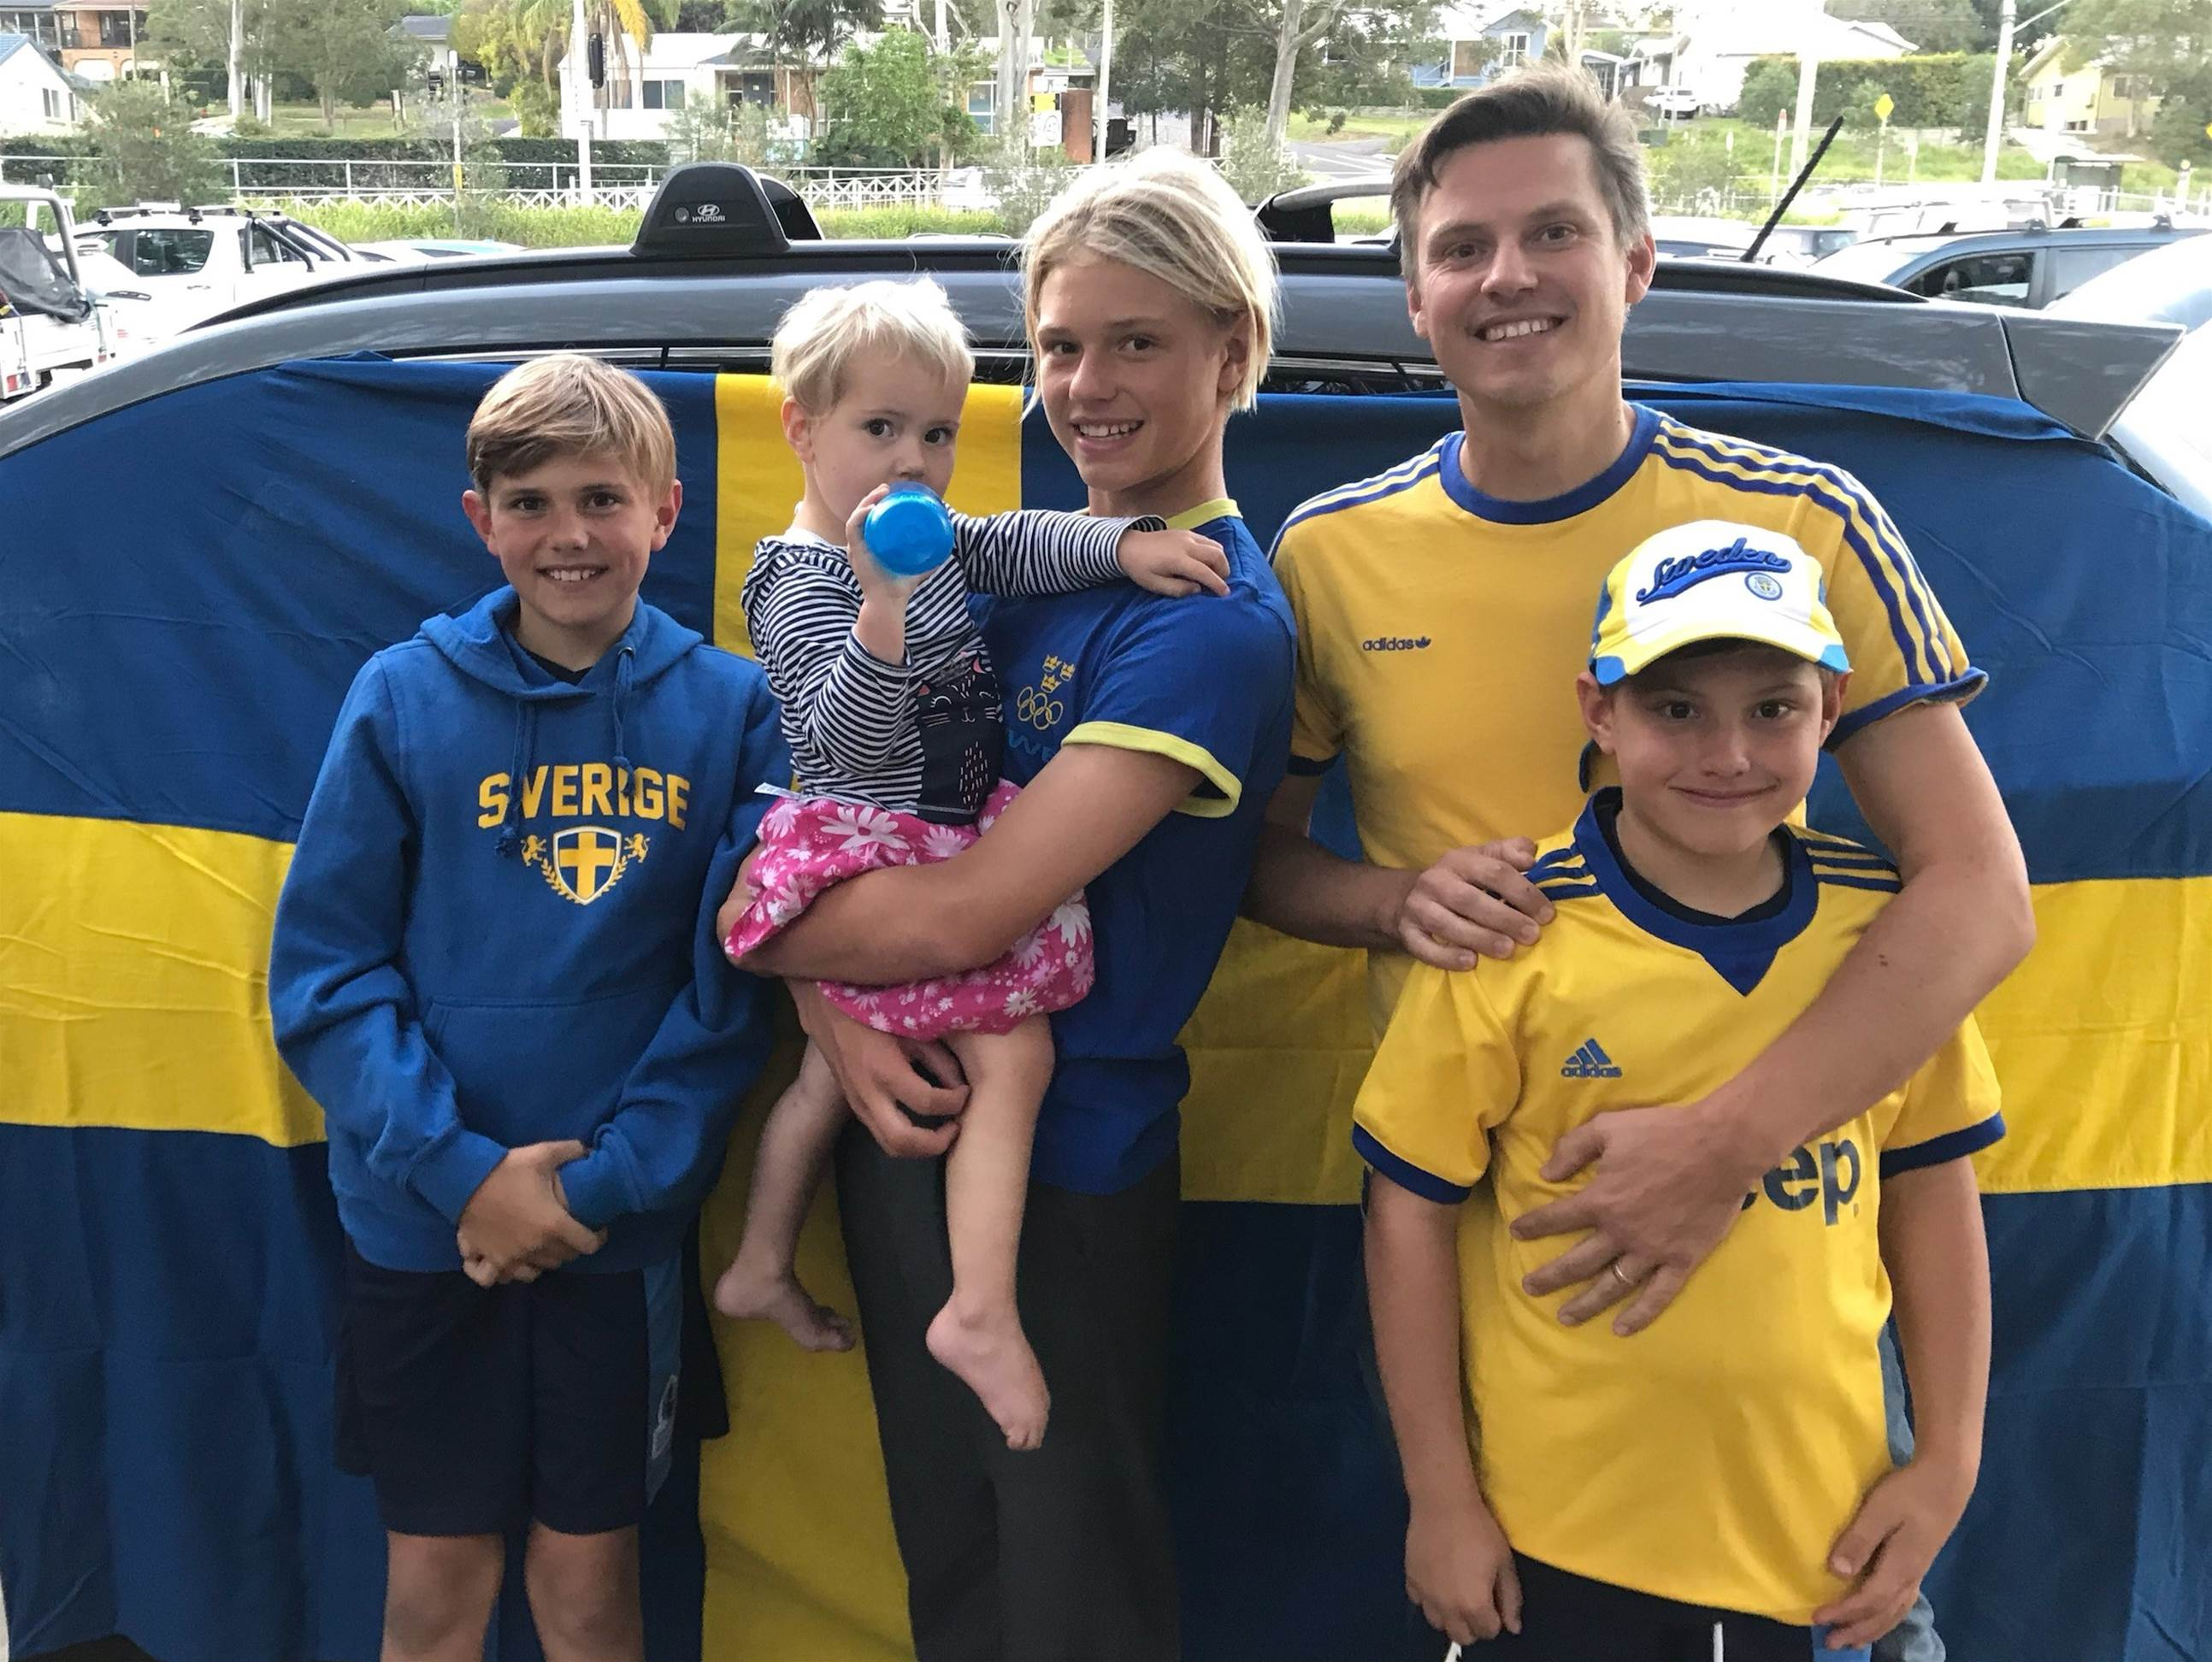 BLOG: The Road to Russia - Sweden